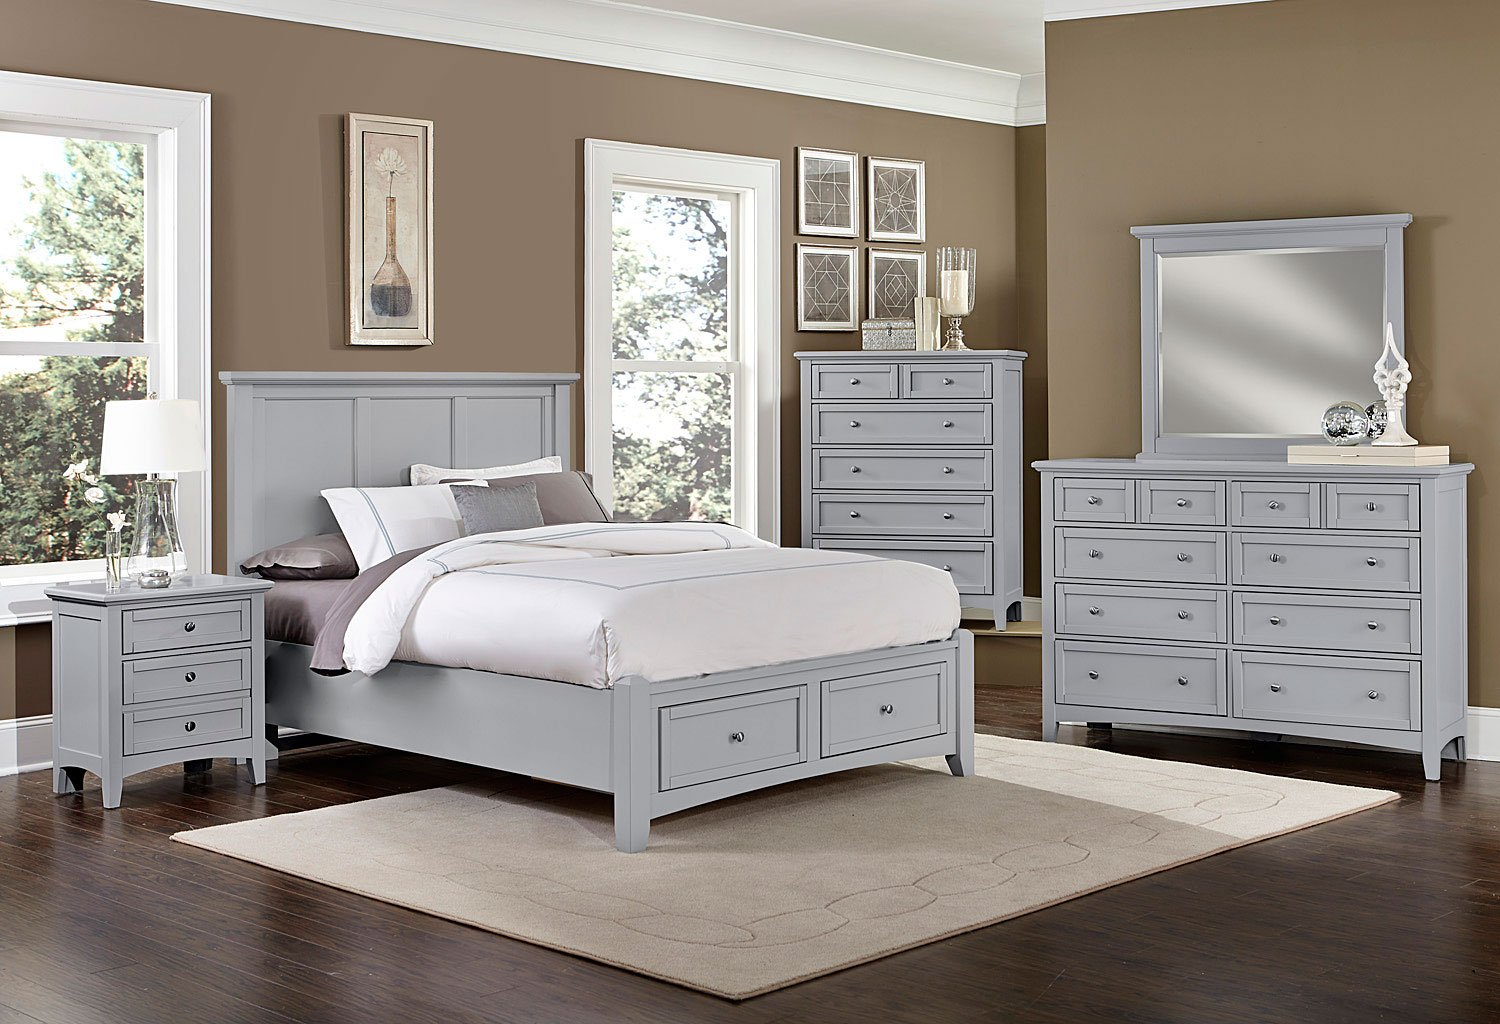 Bonanza Mansion Storage Bedroom Set (Gray) Vaughan Bassett